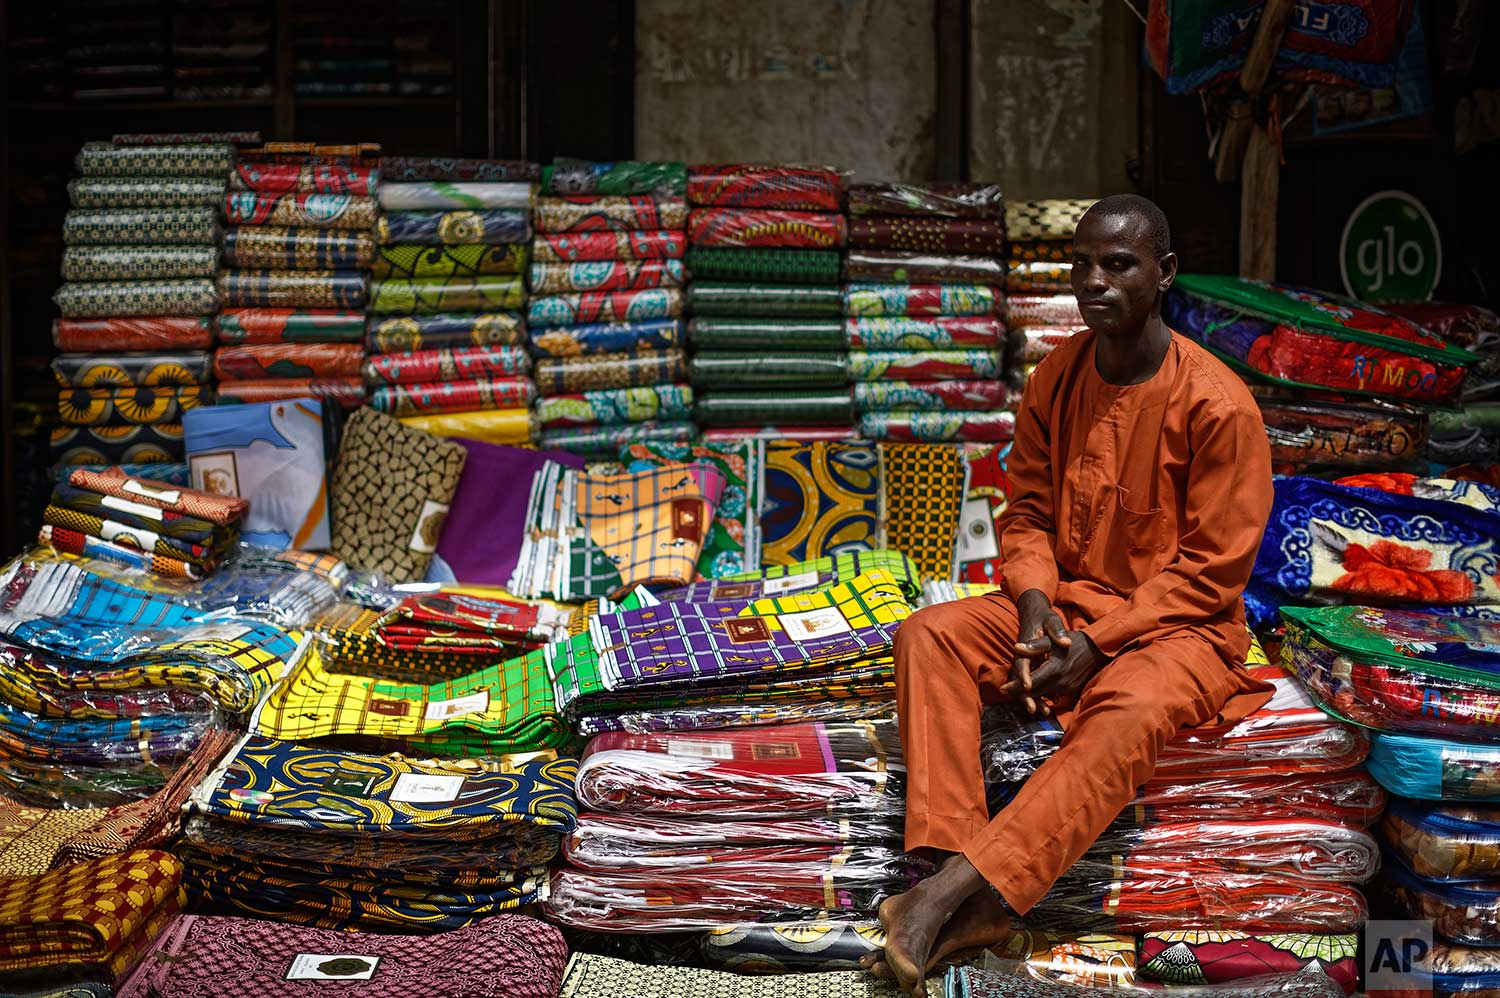 In this photo taken Tuesday, Feb. 19, 2019, a shopkeeper sits at his stall selling a variety of wax-printed fabrics made in China that fill the market in Kano, northern Nigeria. (AP Photo/Ben Curtis)